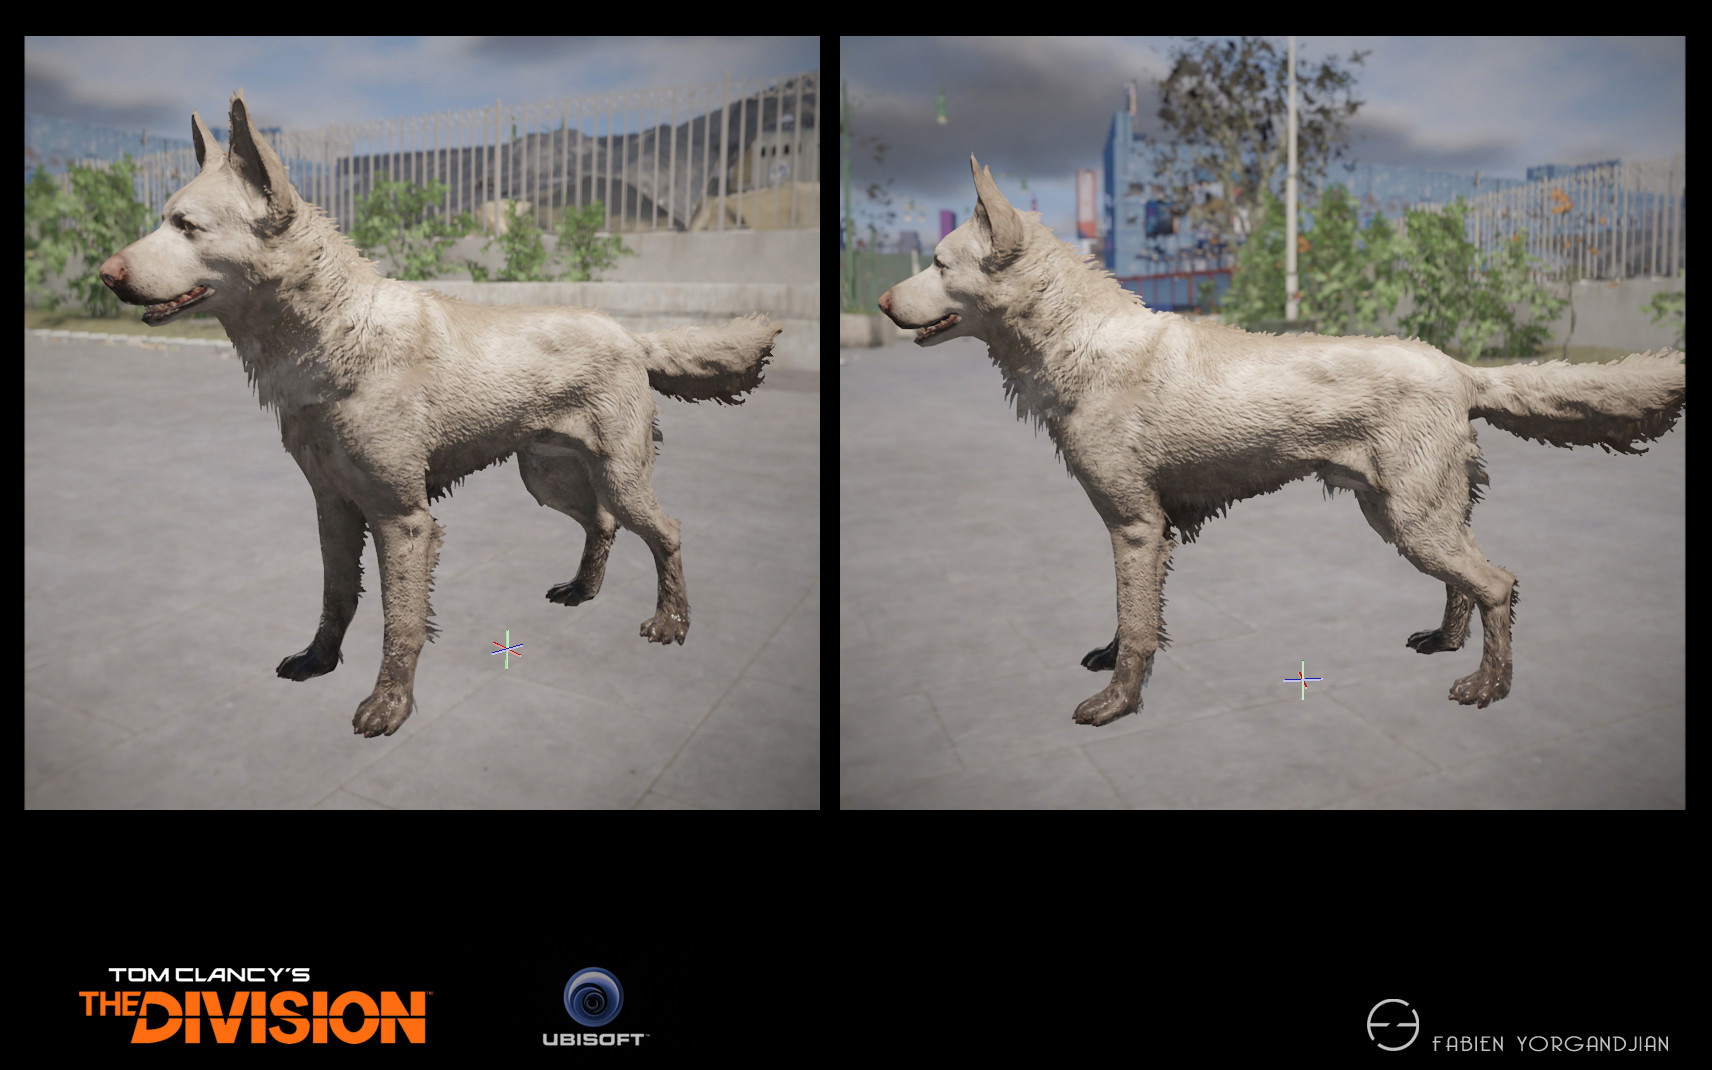 Fabien yorgandjian the division dog04 ingame